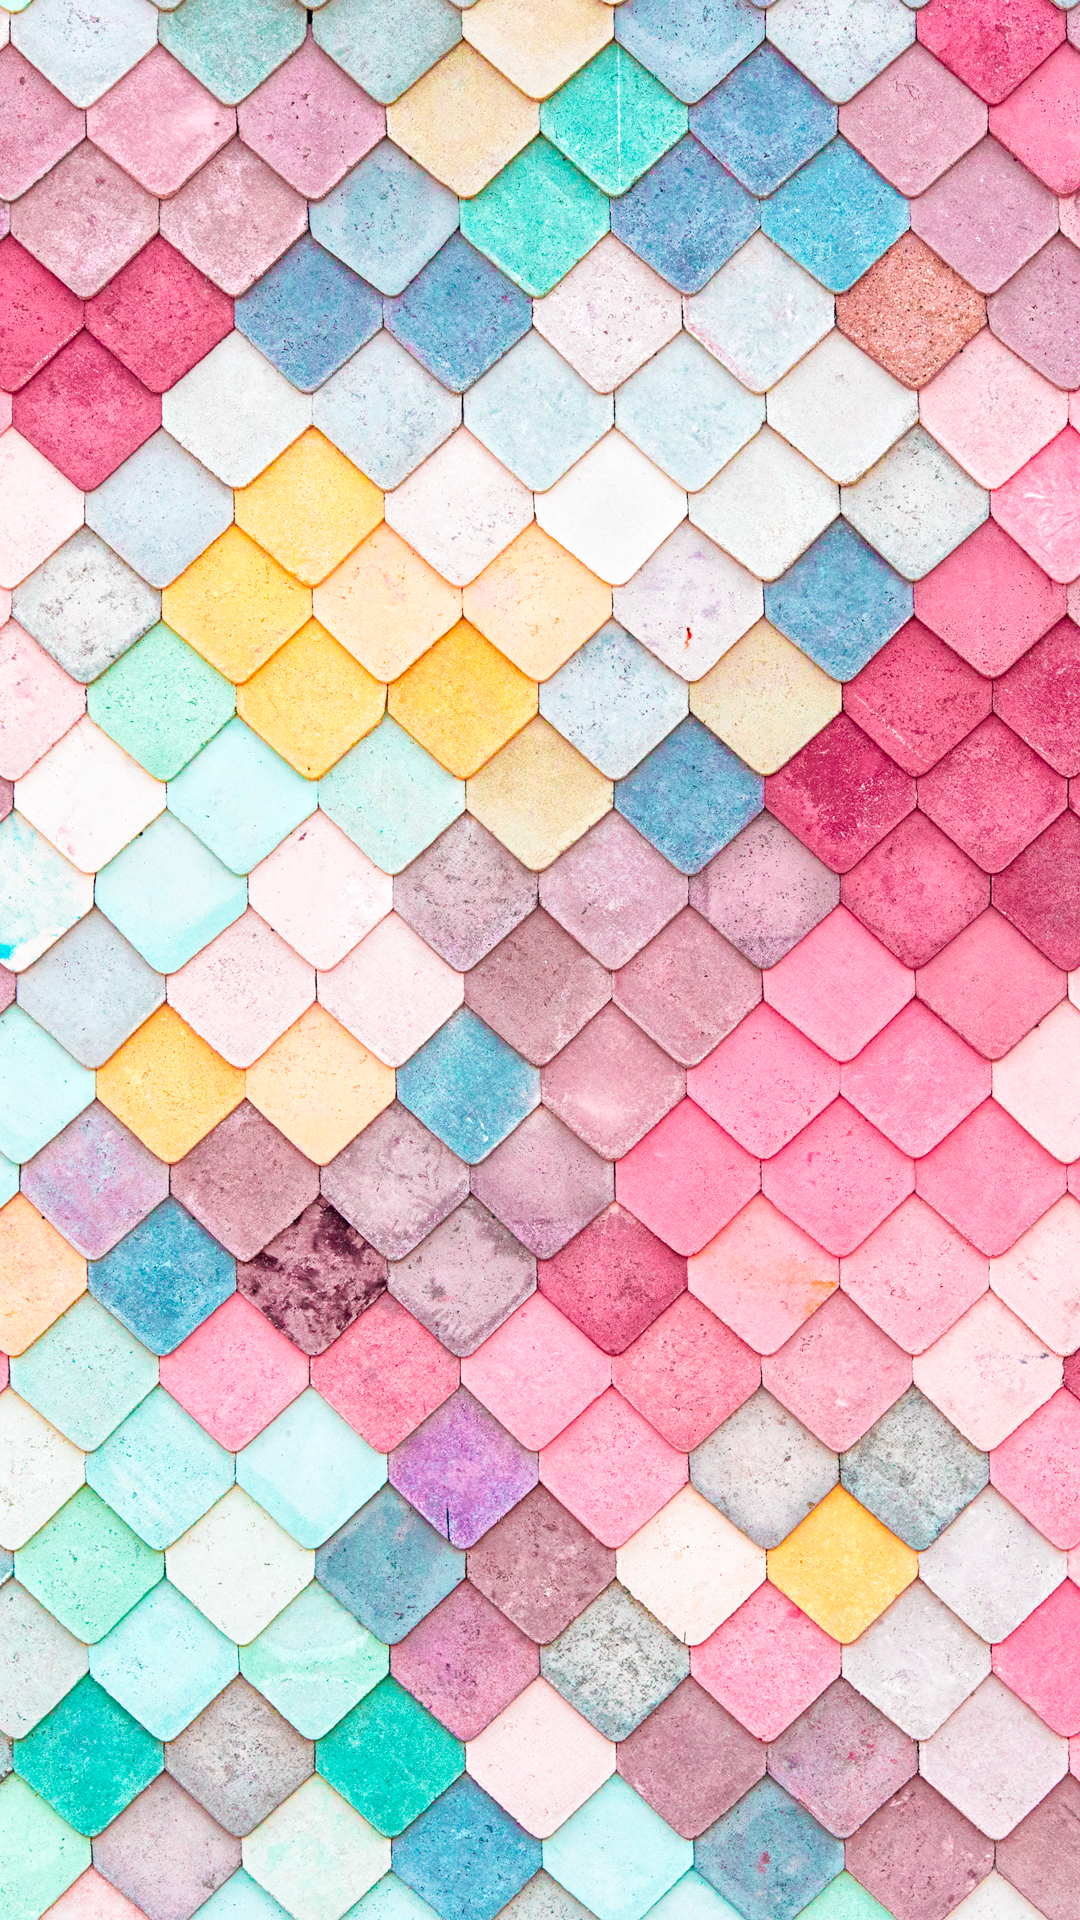 Download-your-favorite-candyminimal-to-your-phone-wallpaper-wp3605165